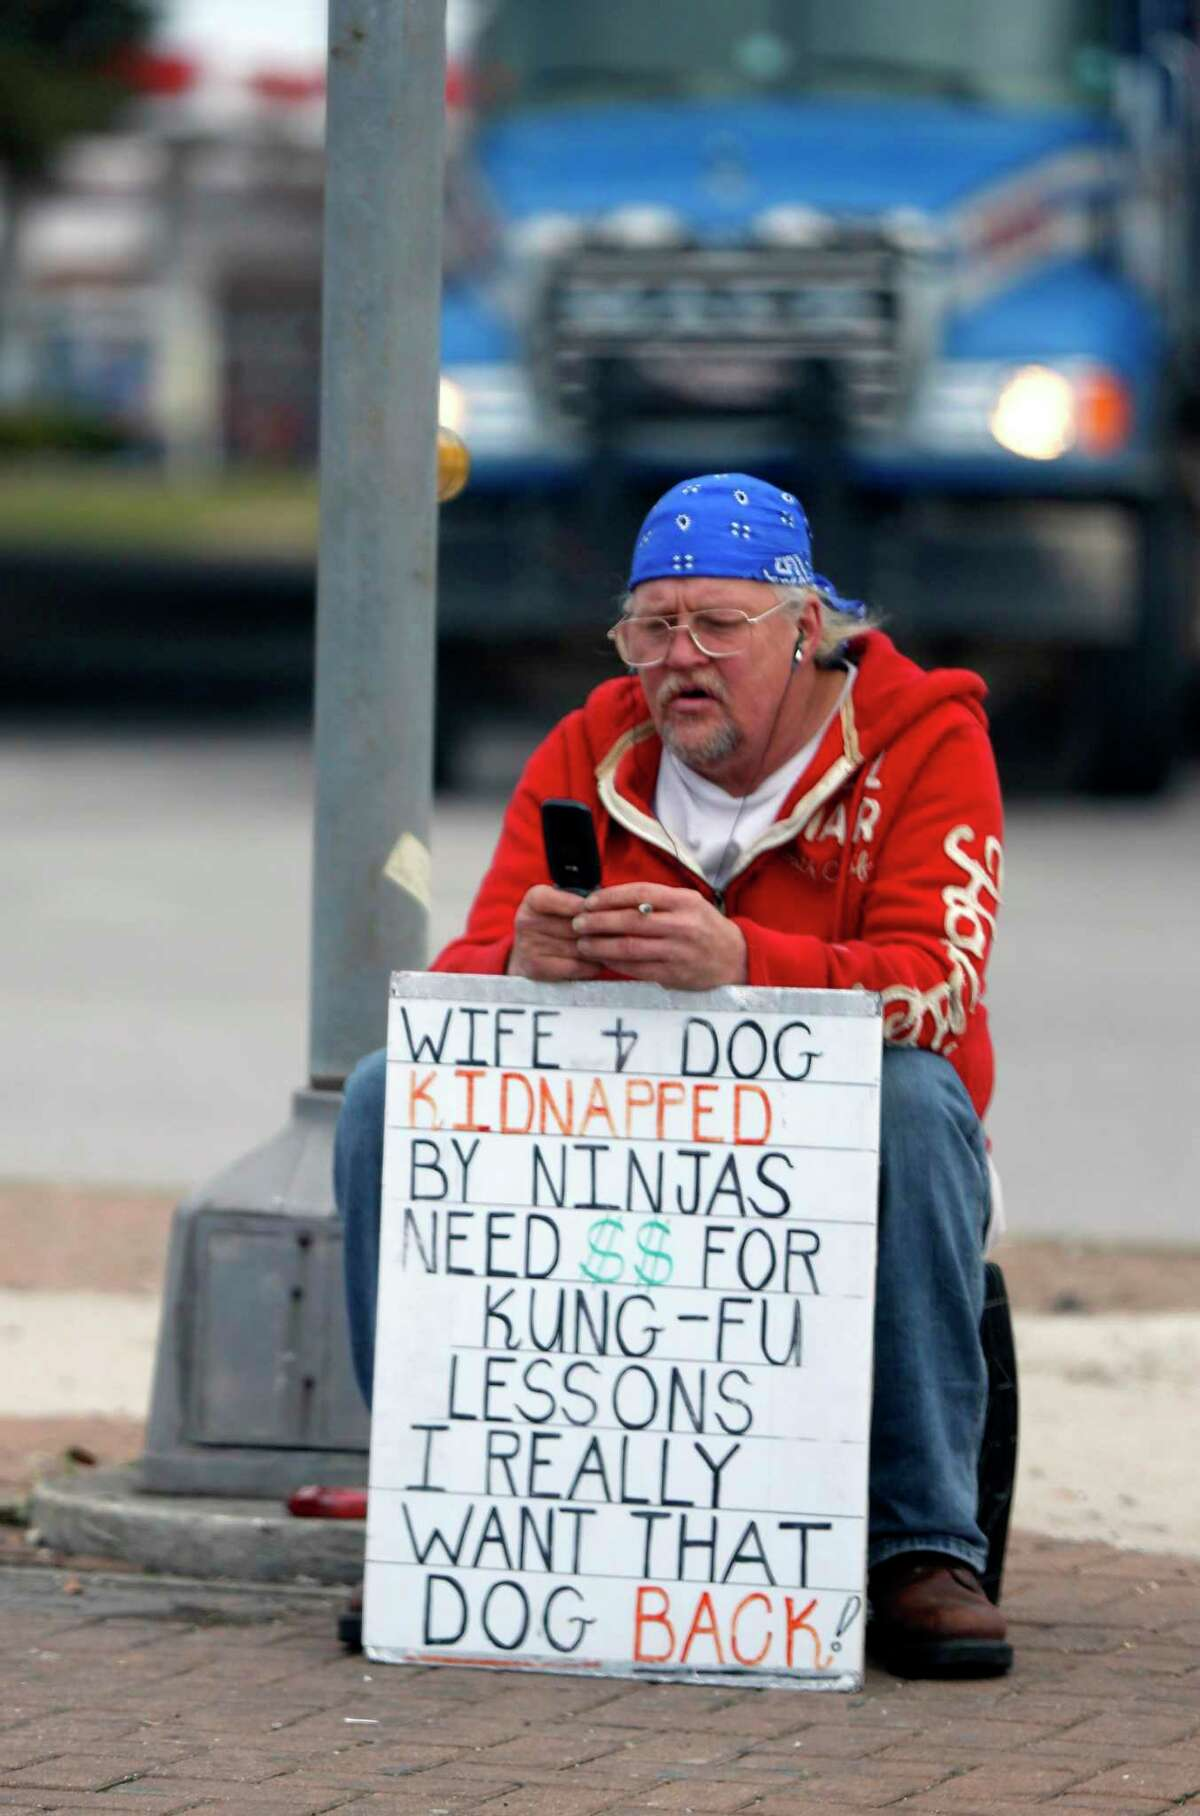 Drivers avoid eye-contact while panhandlers desire it. Both givers and takers engage in a ritualistic exchange of social capital.